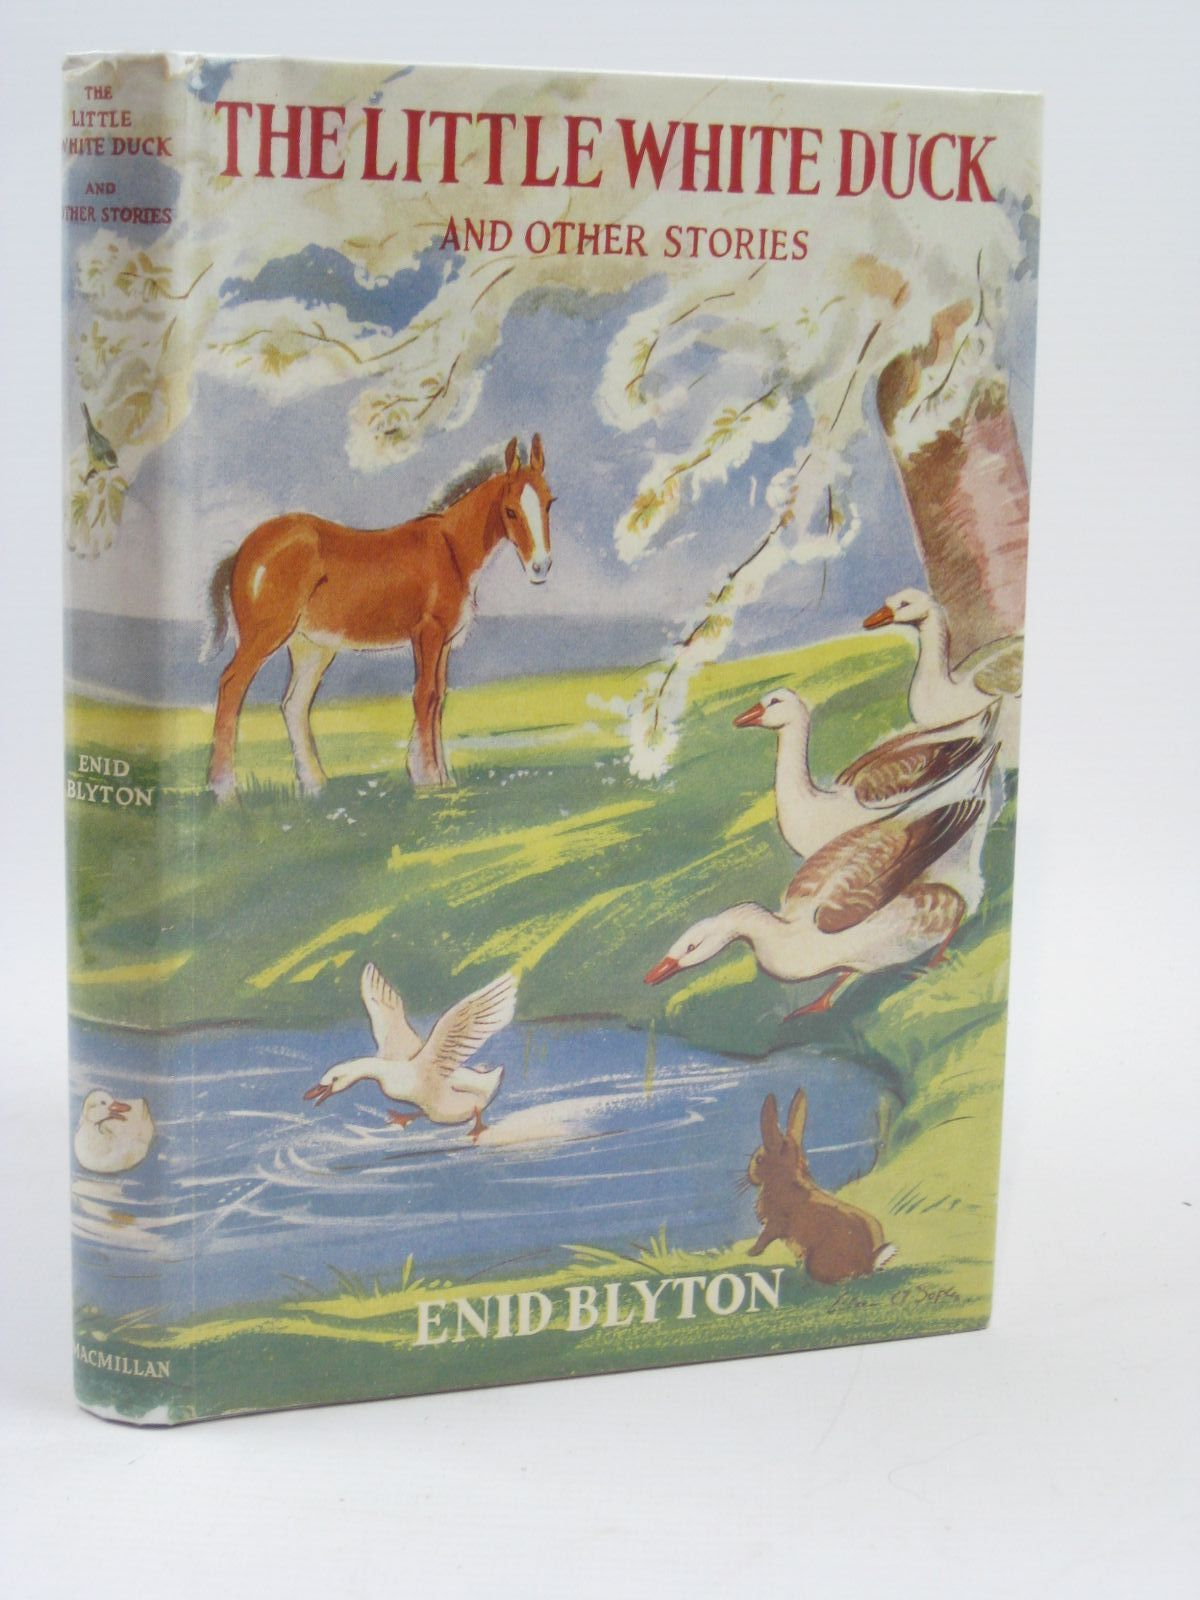 Cover of THE LITTLE WHITE DUCK AND OTHER STORIES by Enid Blyton